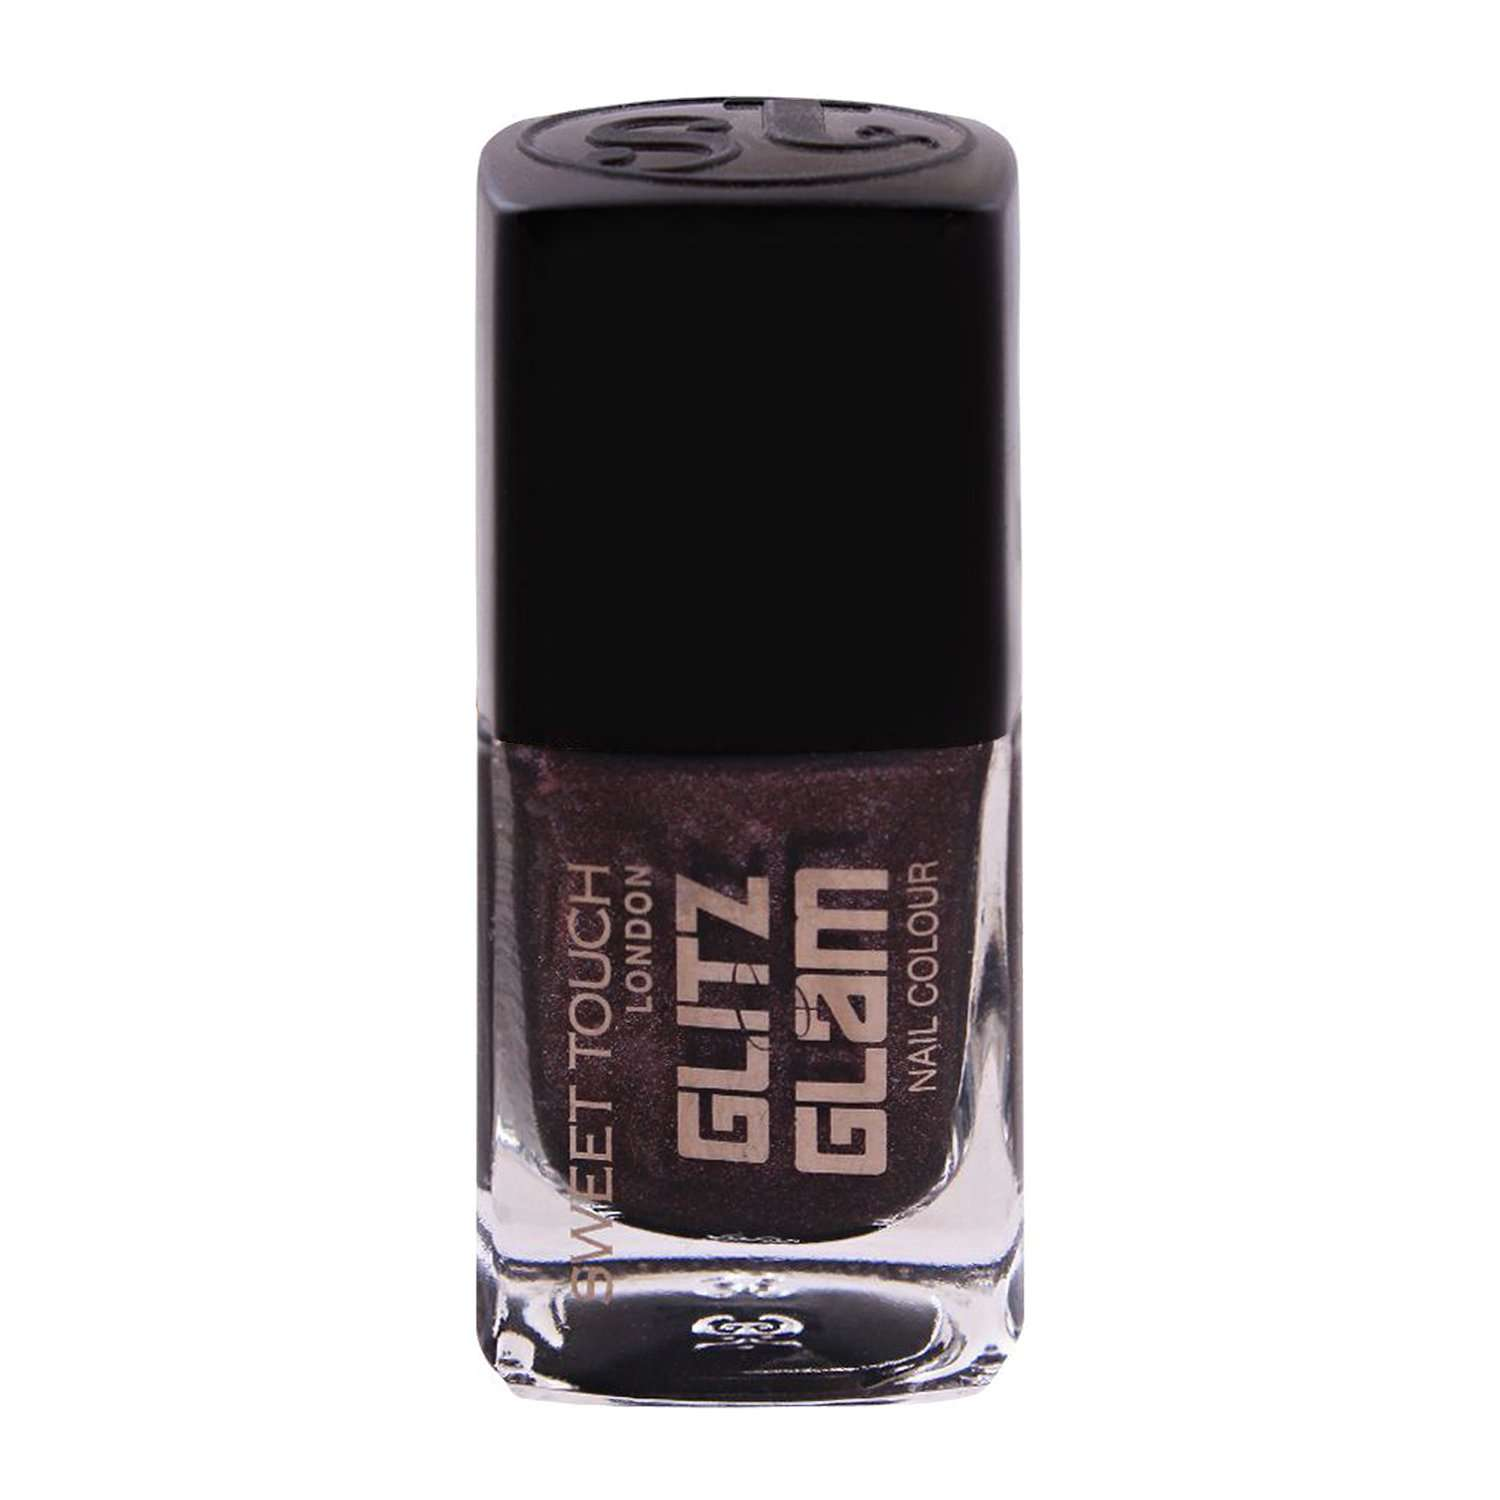 Glitz & Glam Nail Colour - ST 251 Galaxy